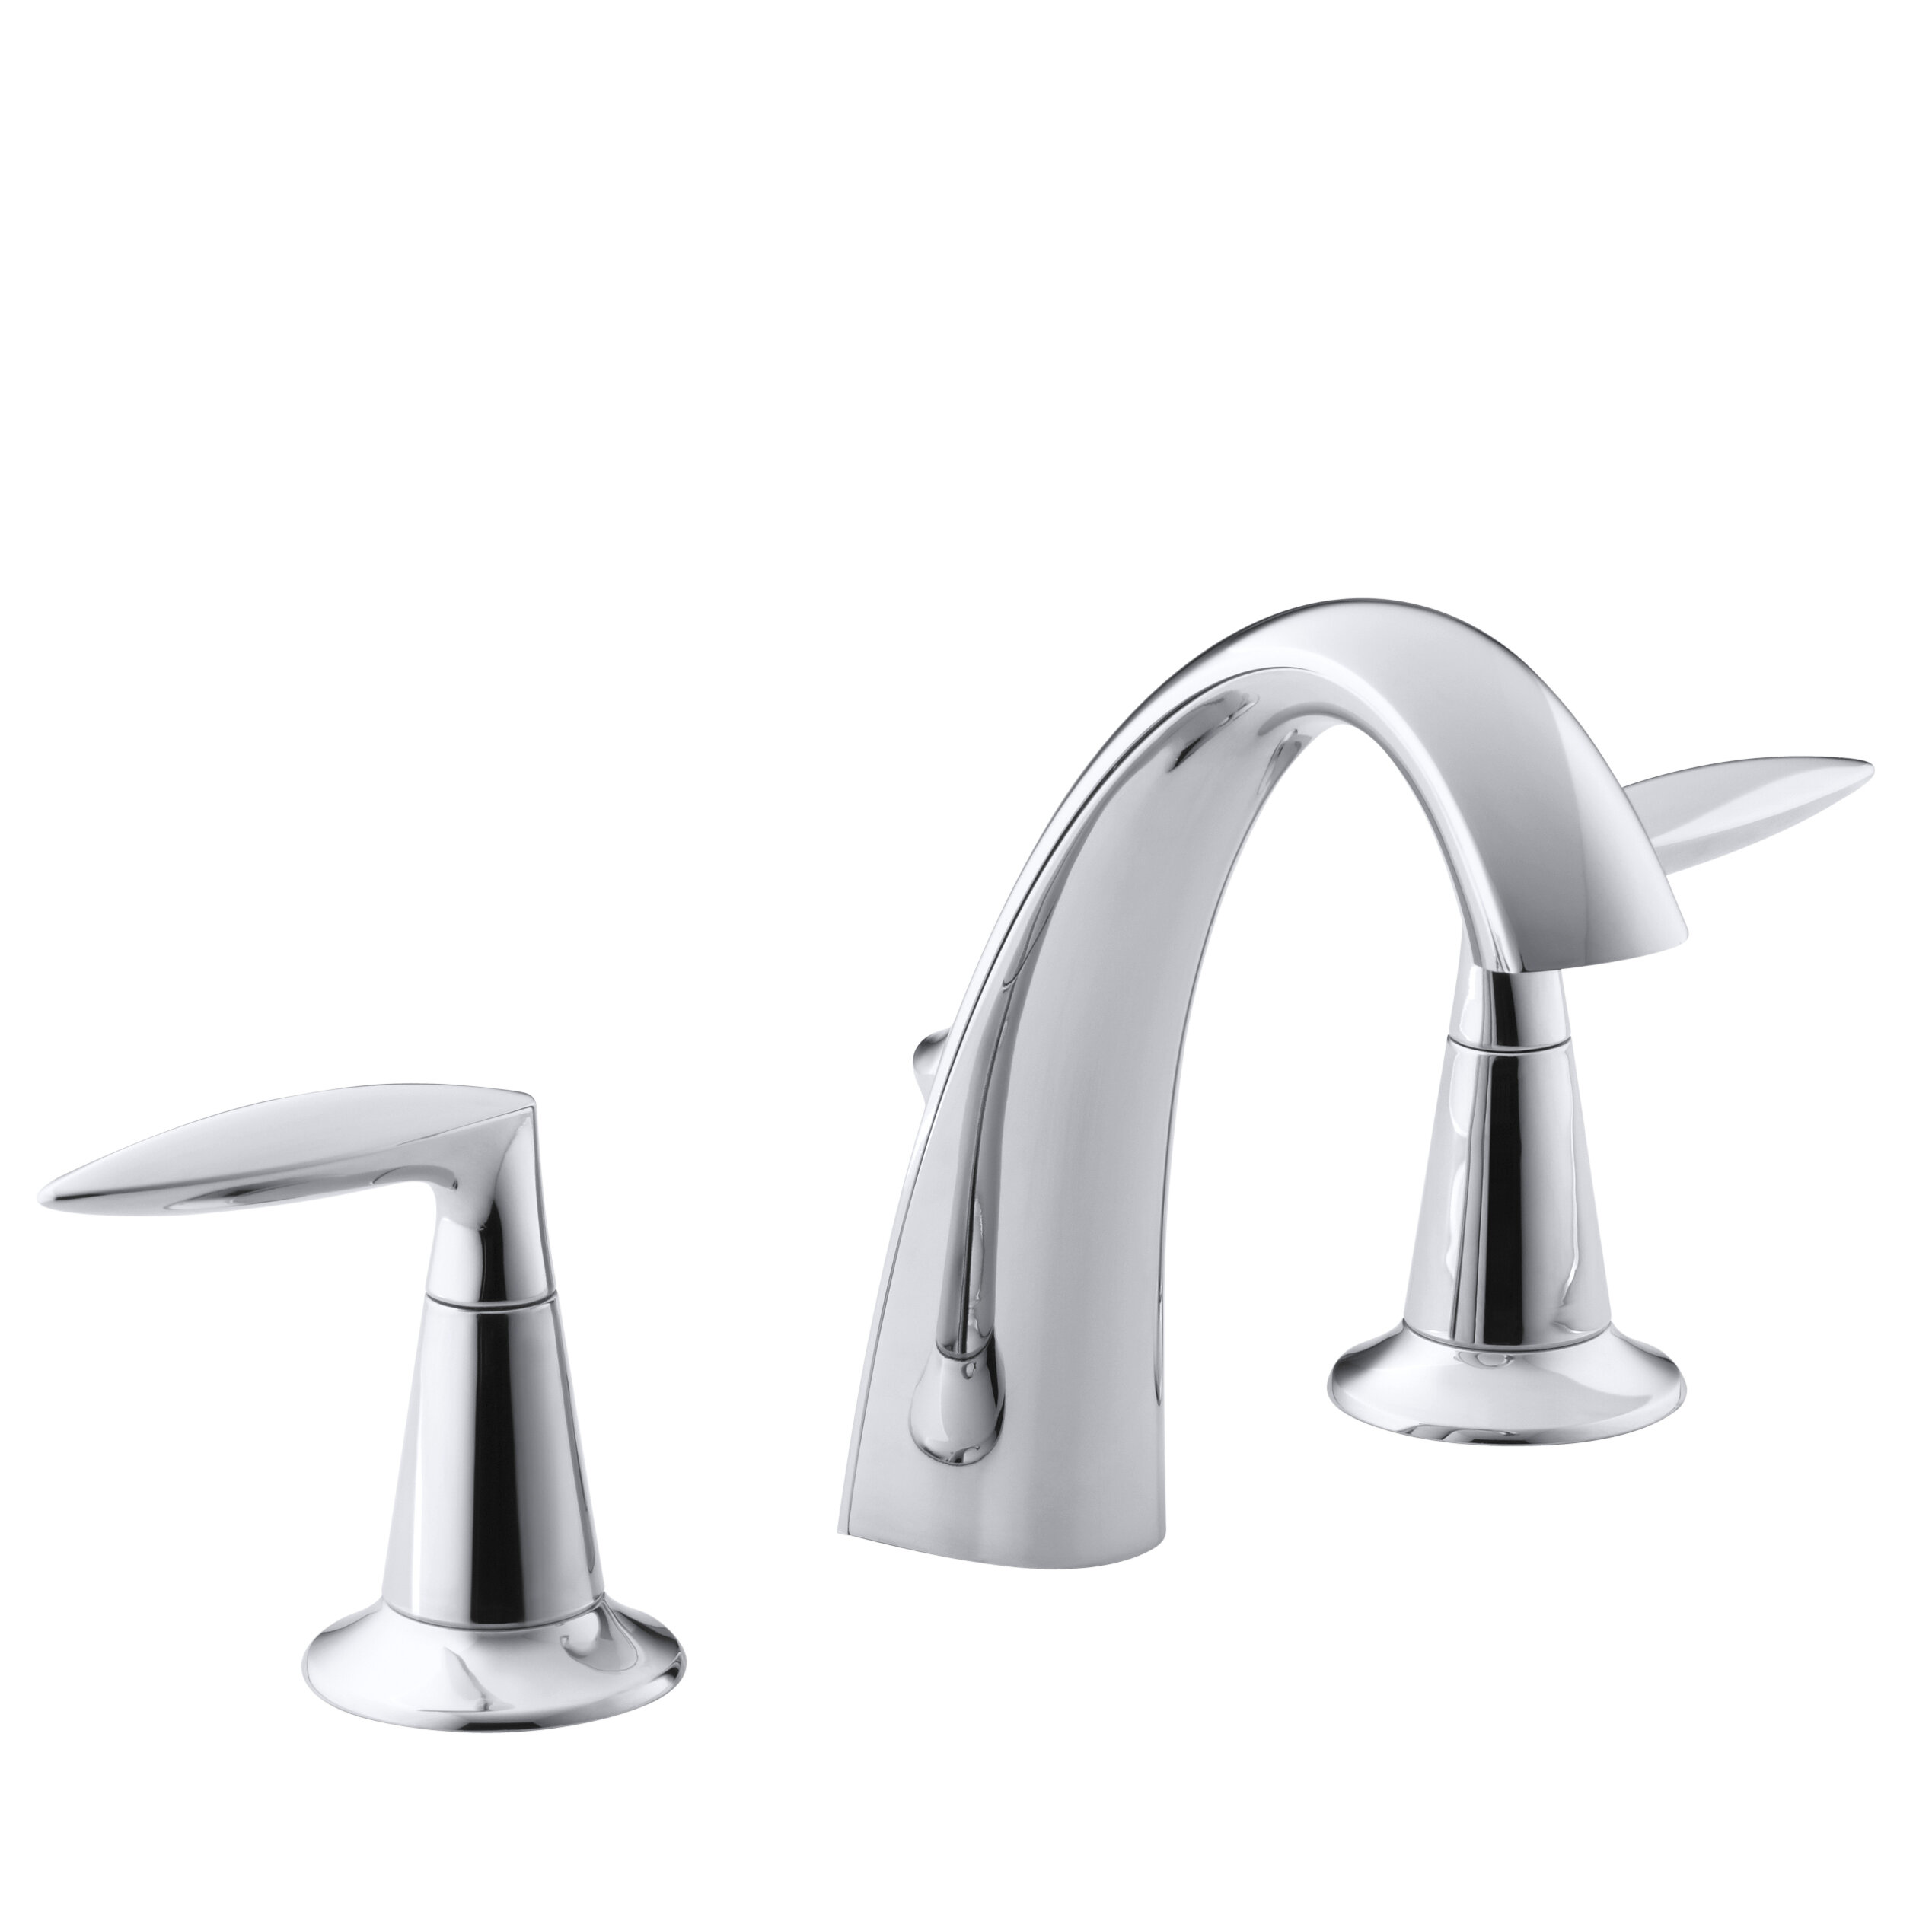 Alteo Widespread Bathroom Sink Faucet with Drain Assembly